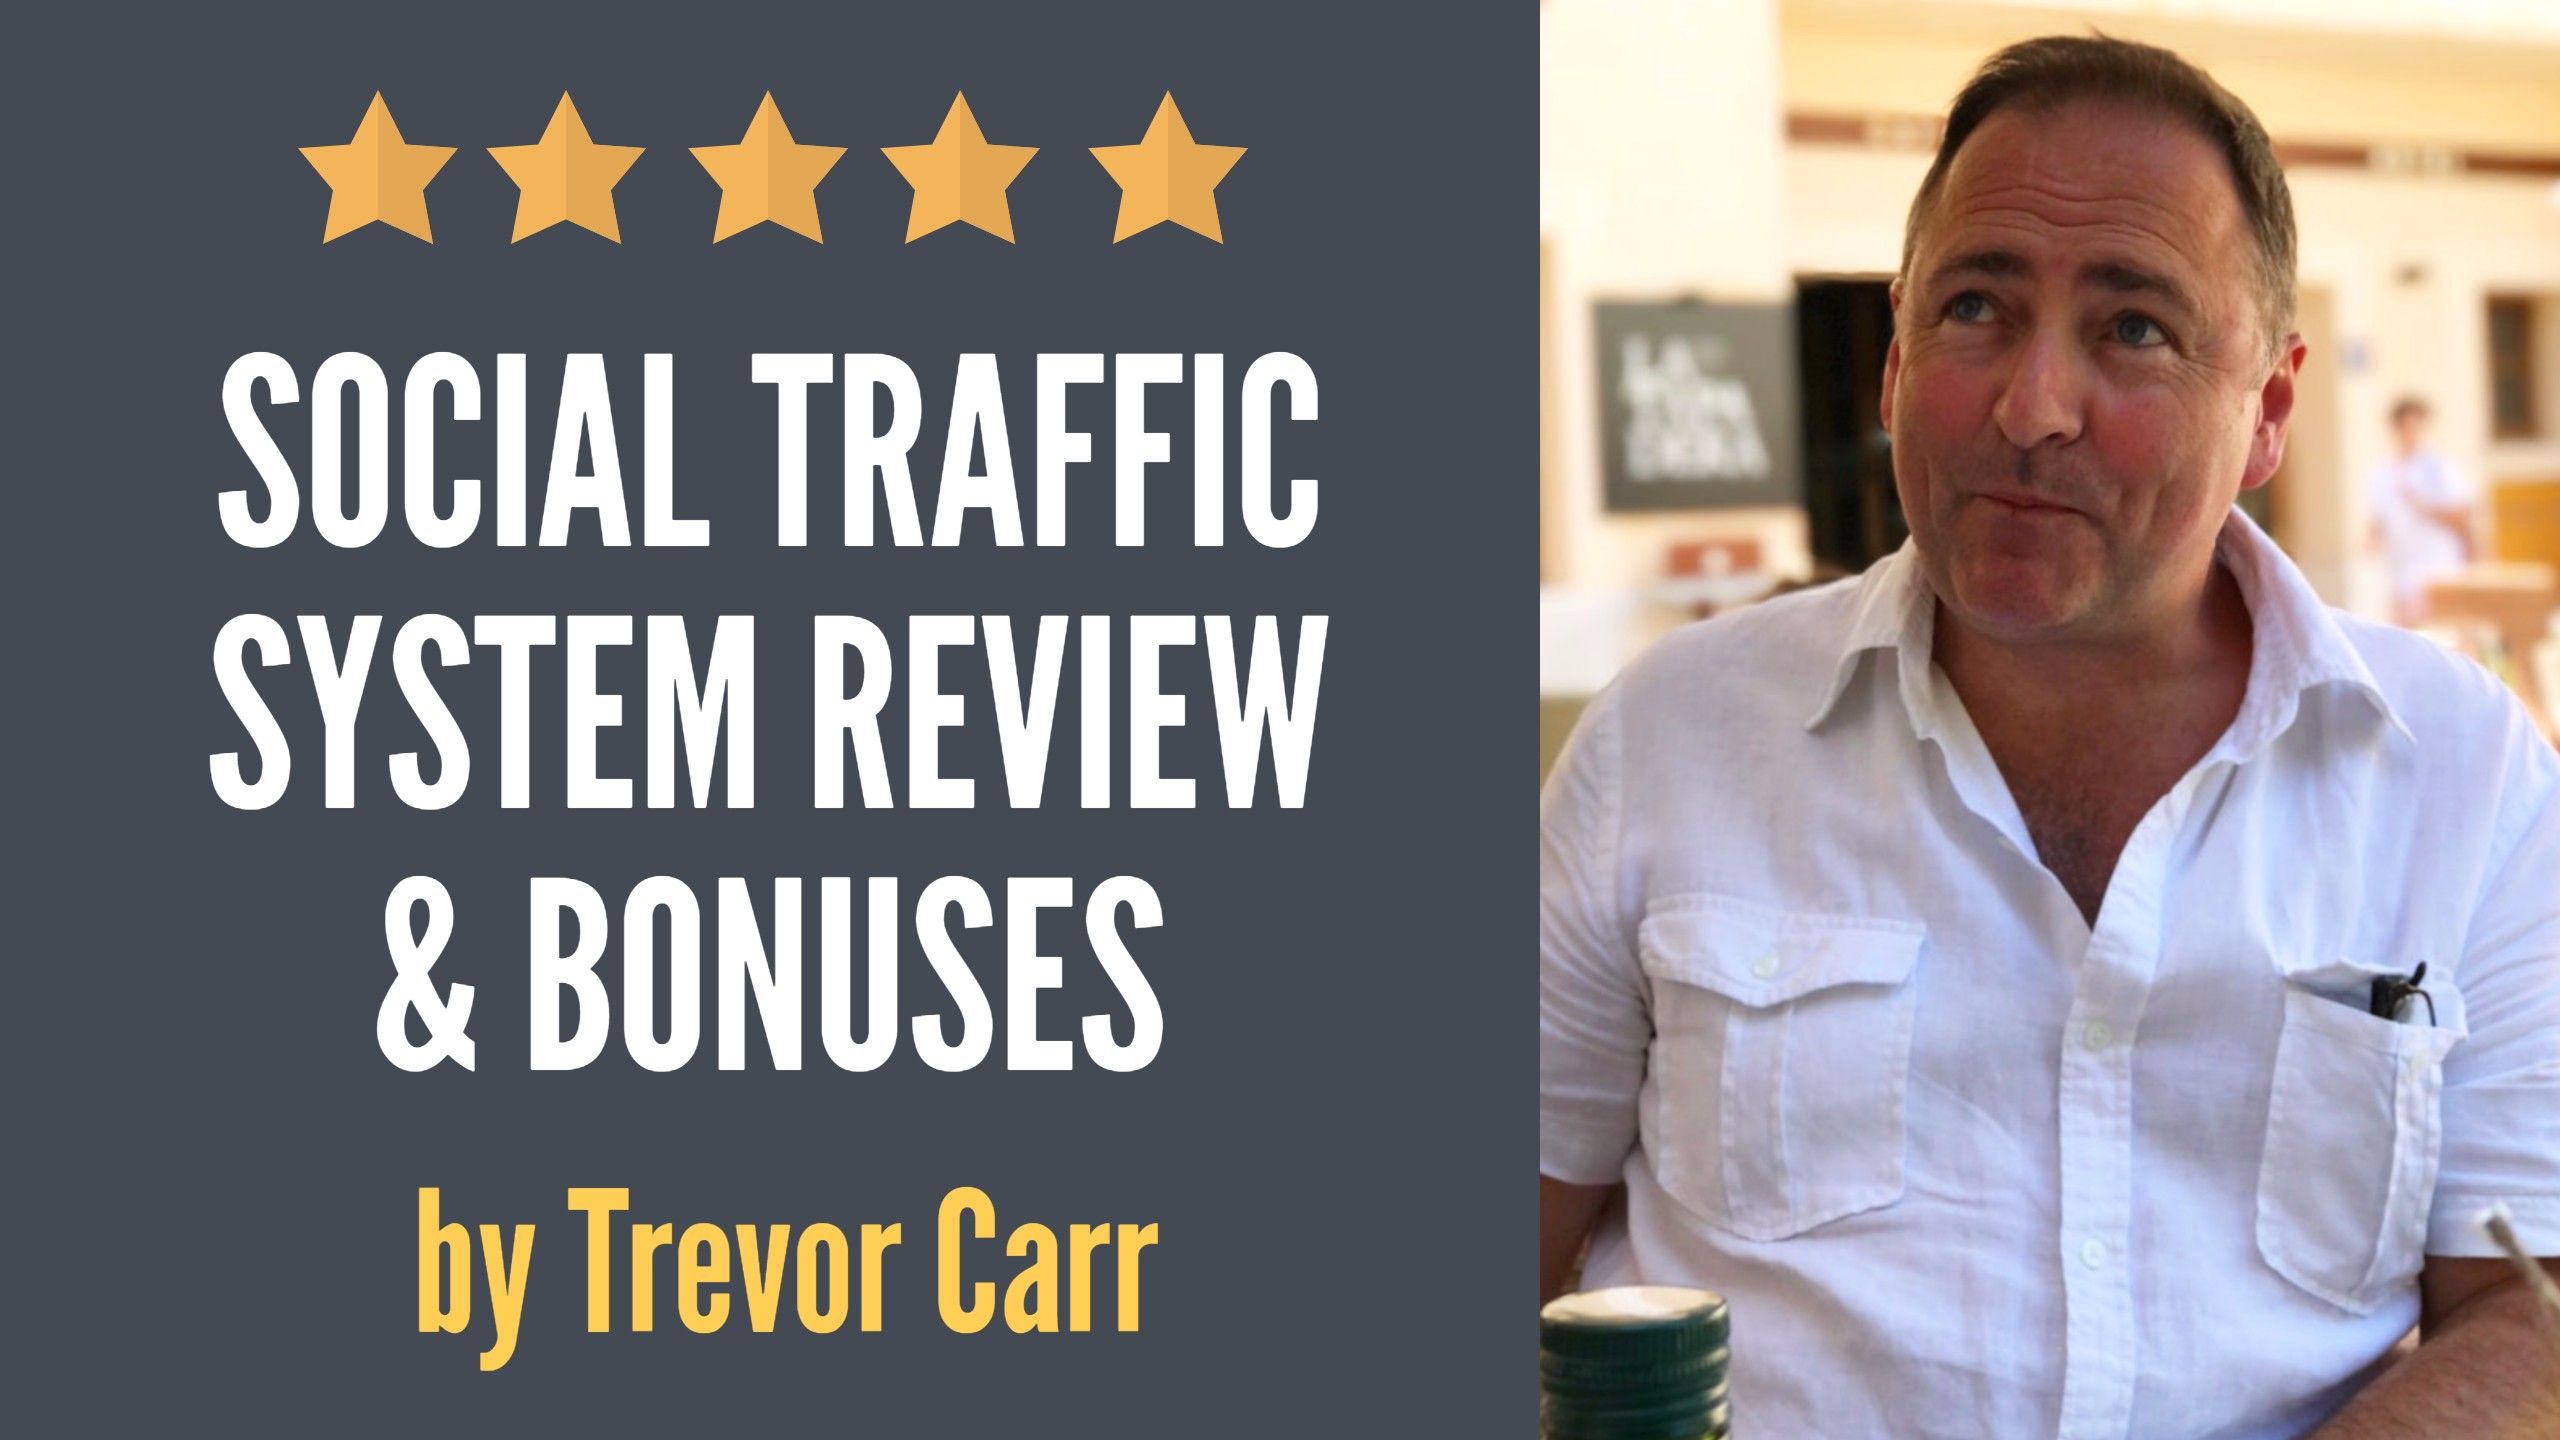 Social Traffic System Review & Bonuses